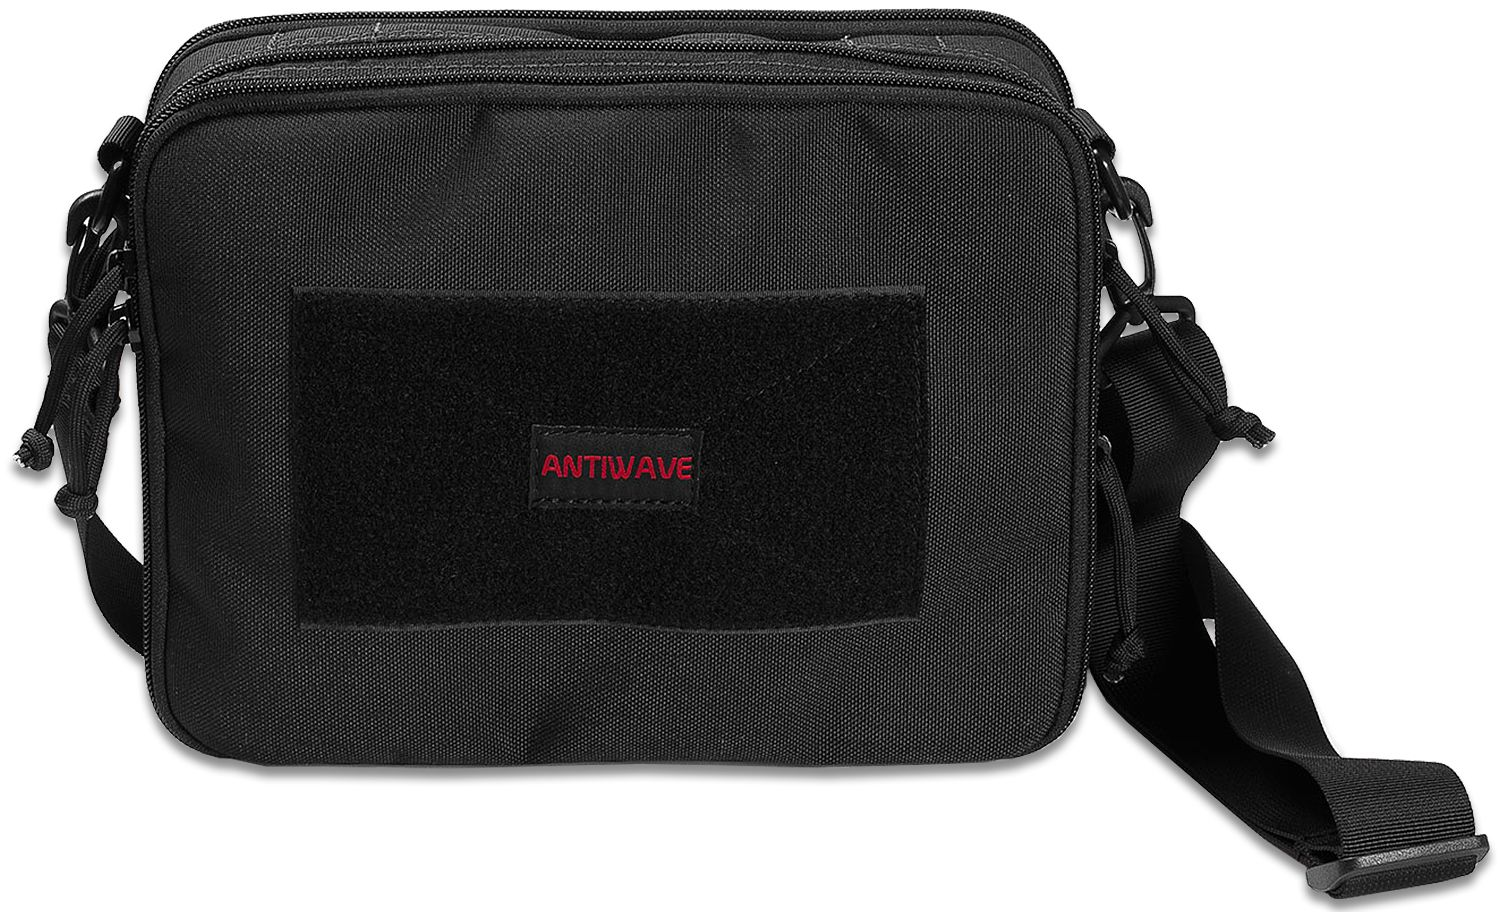 Antiwave Chameleon Citizen Gear Bag, Black